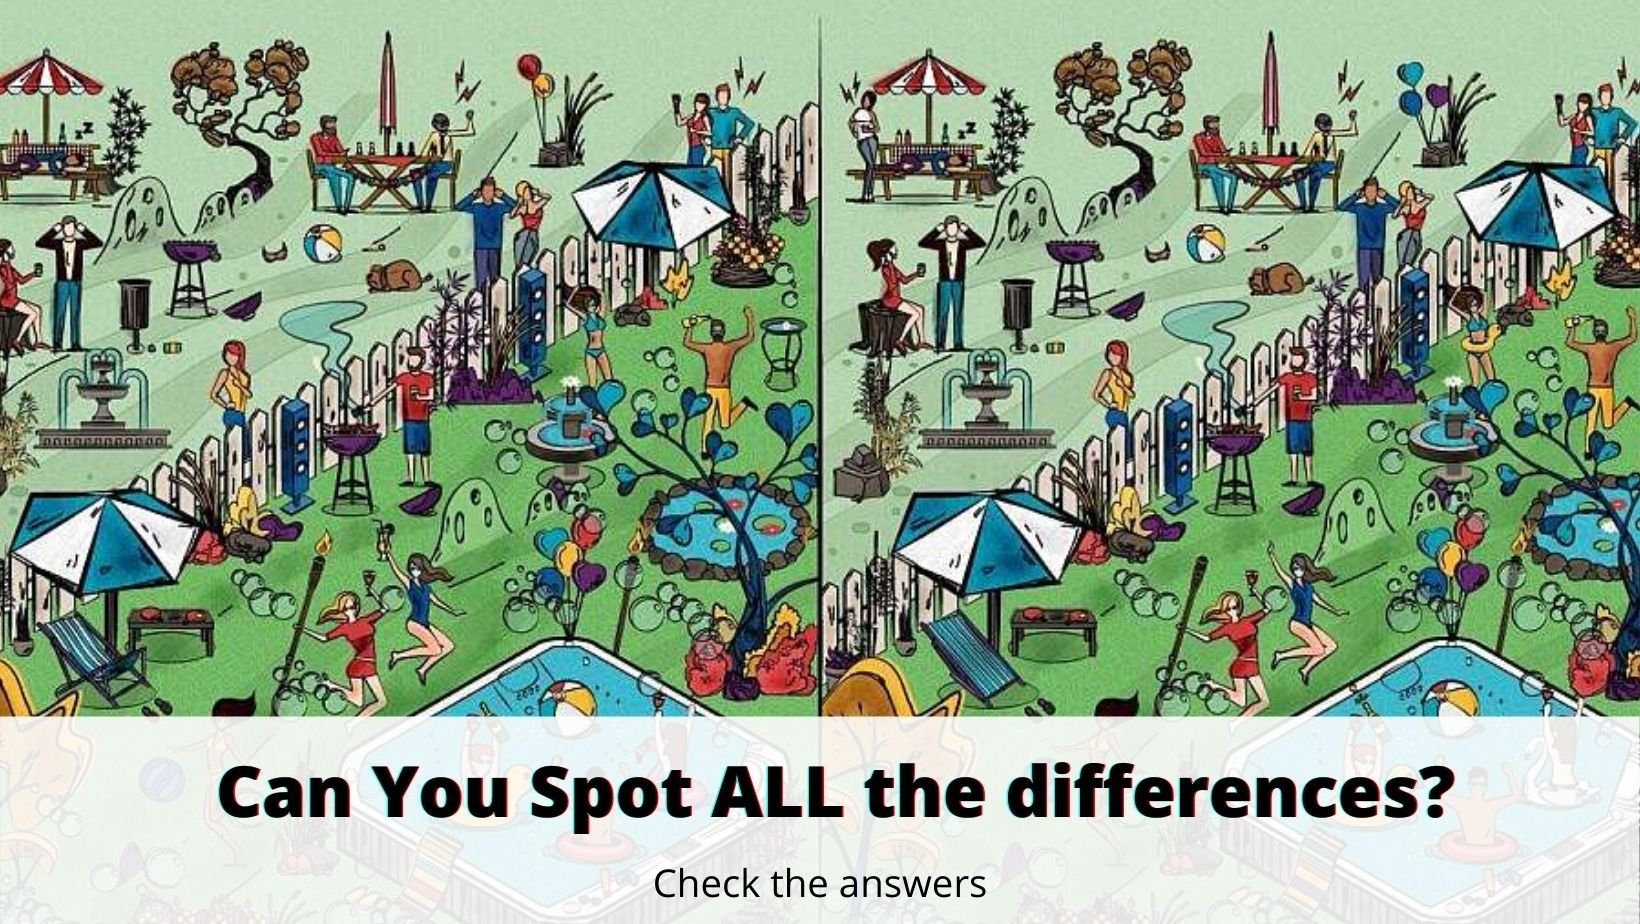 small joys thumbnail 4 3.jpg?resize=1200,630 - Can You Spot All EIGHT Differences In This Party Image?